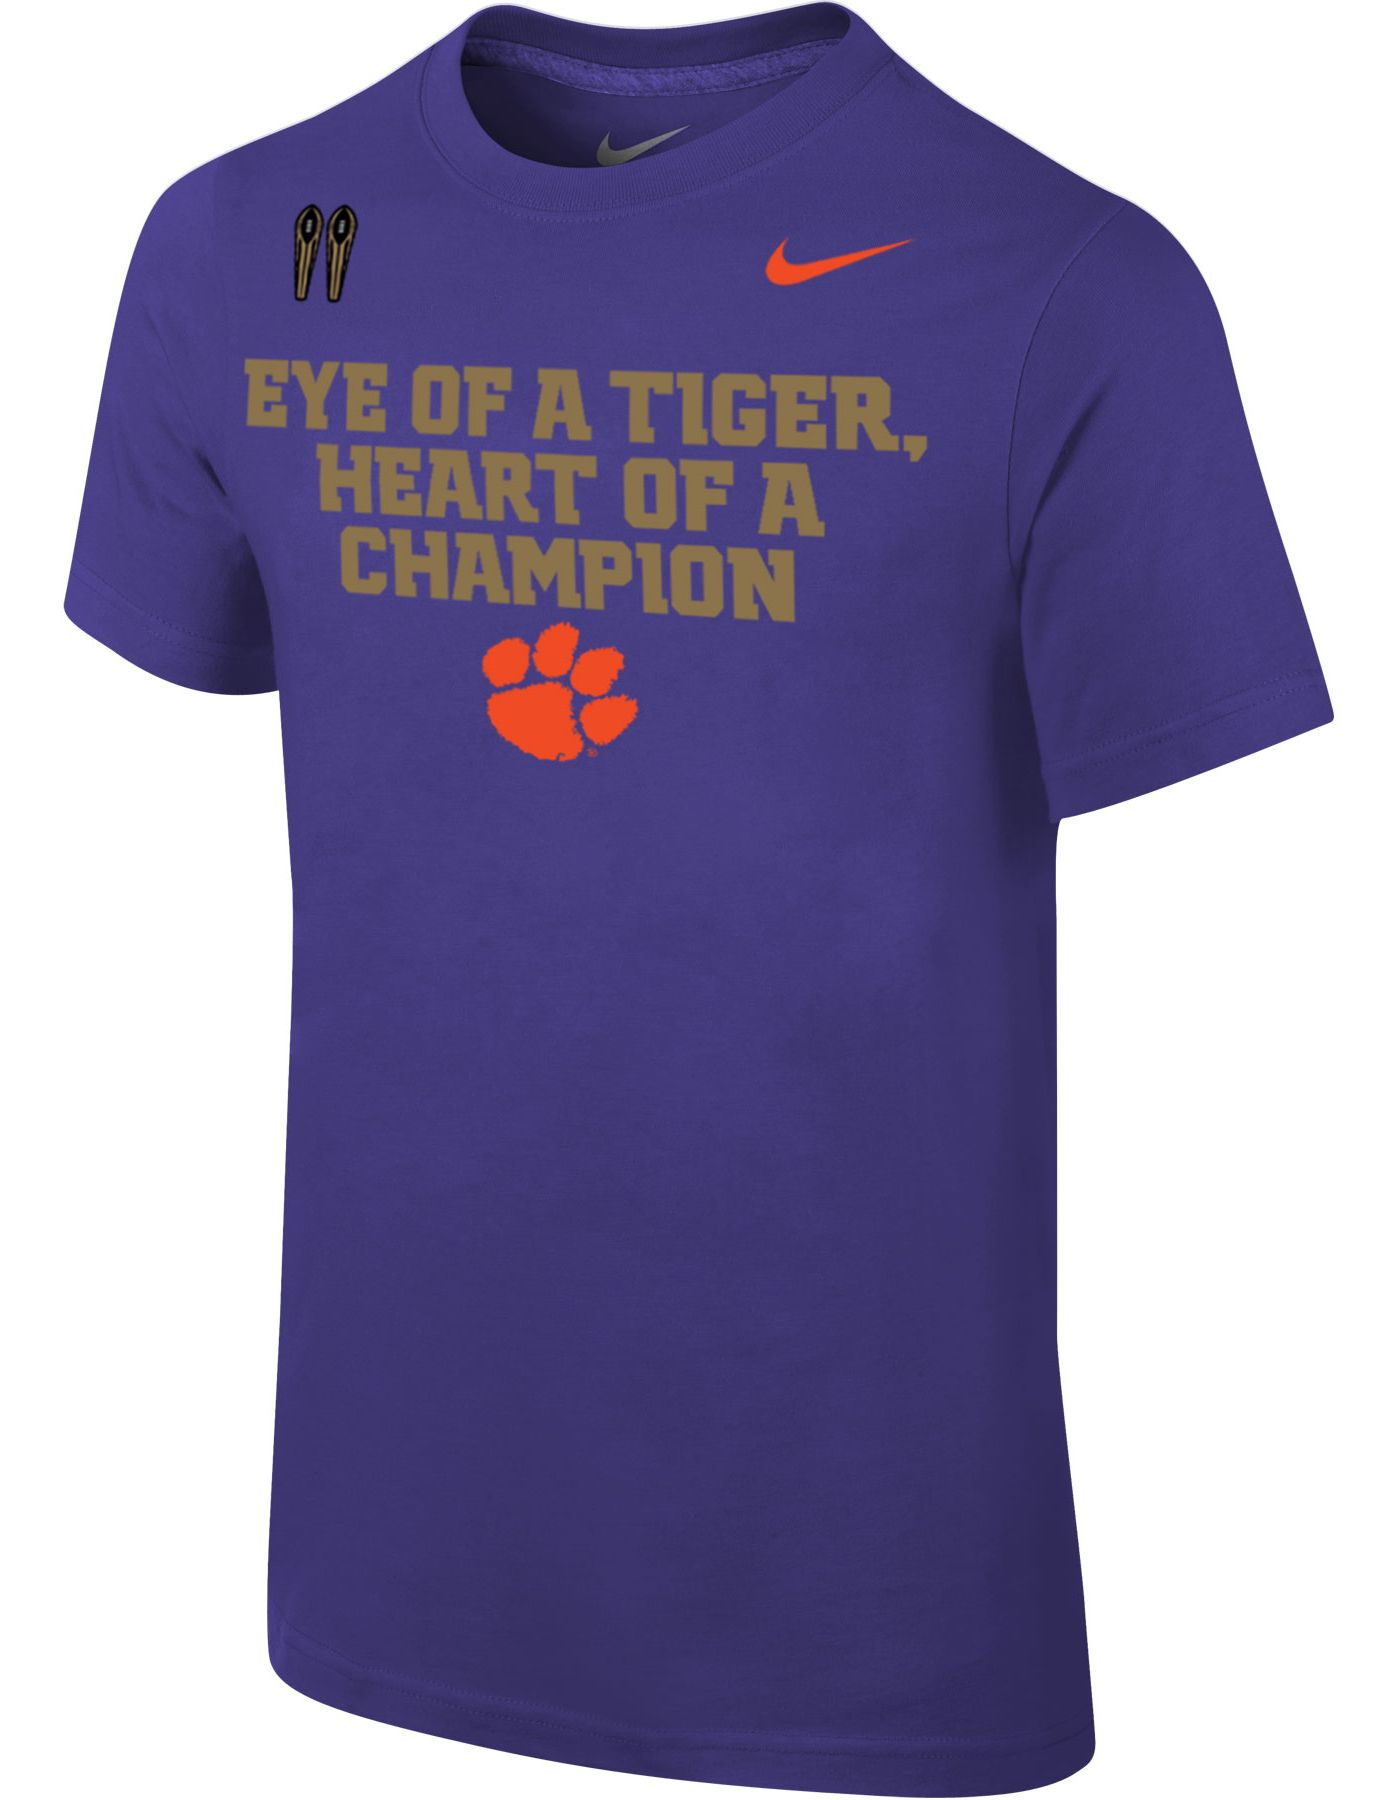 Nike Youth Clemson Tigers Regalia 'Eye of a Tiger, Heart of a Champion' Mantra T-Shirt